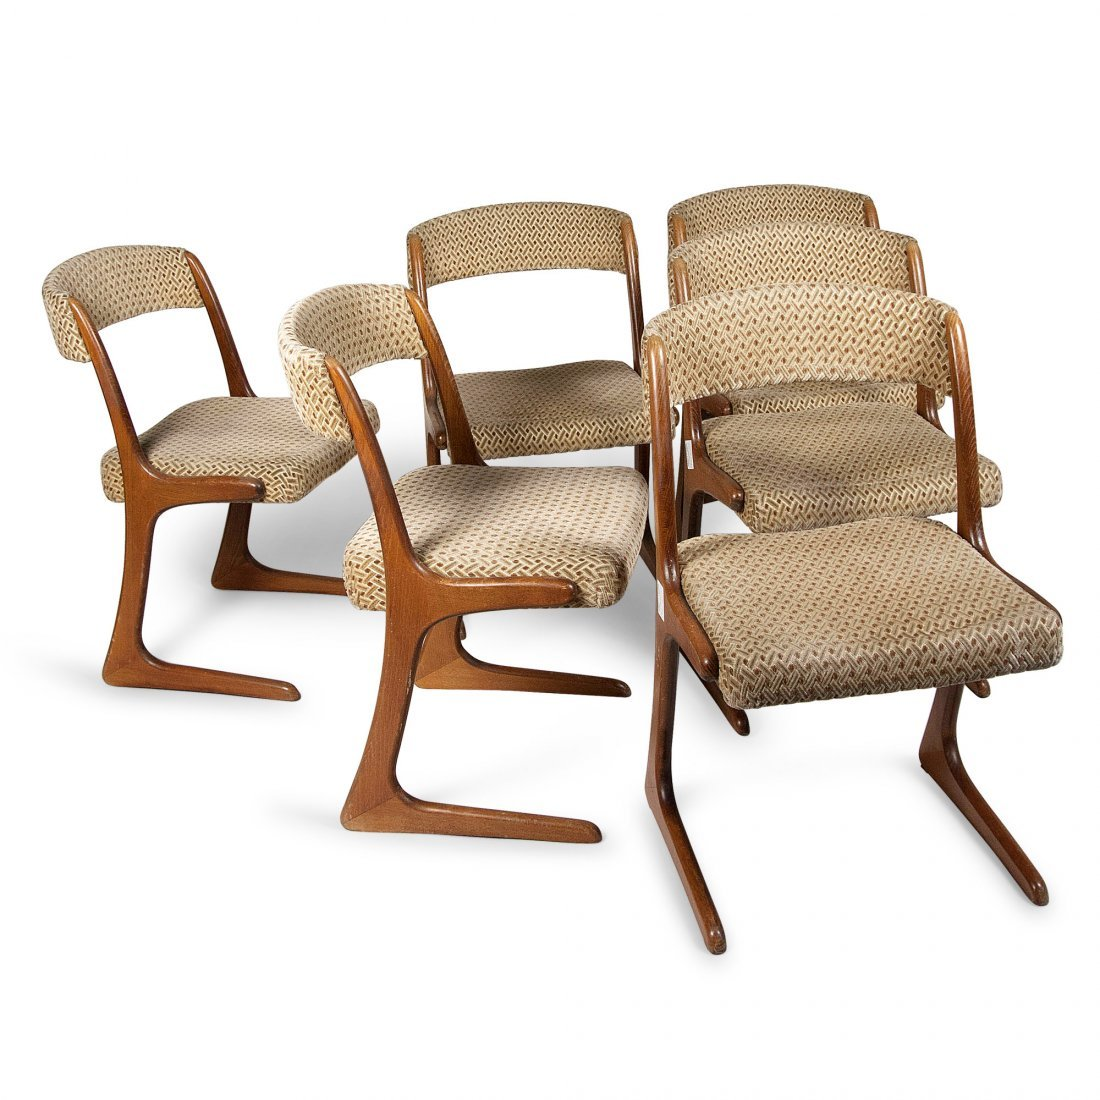 Guillerme and Chambron Dining Chairs, Six